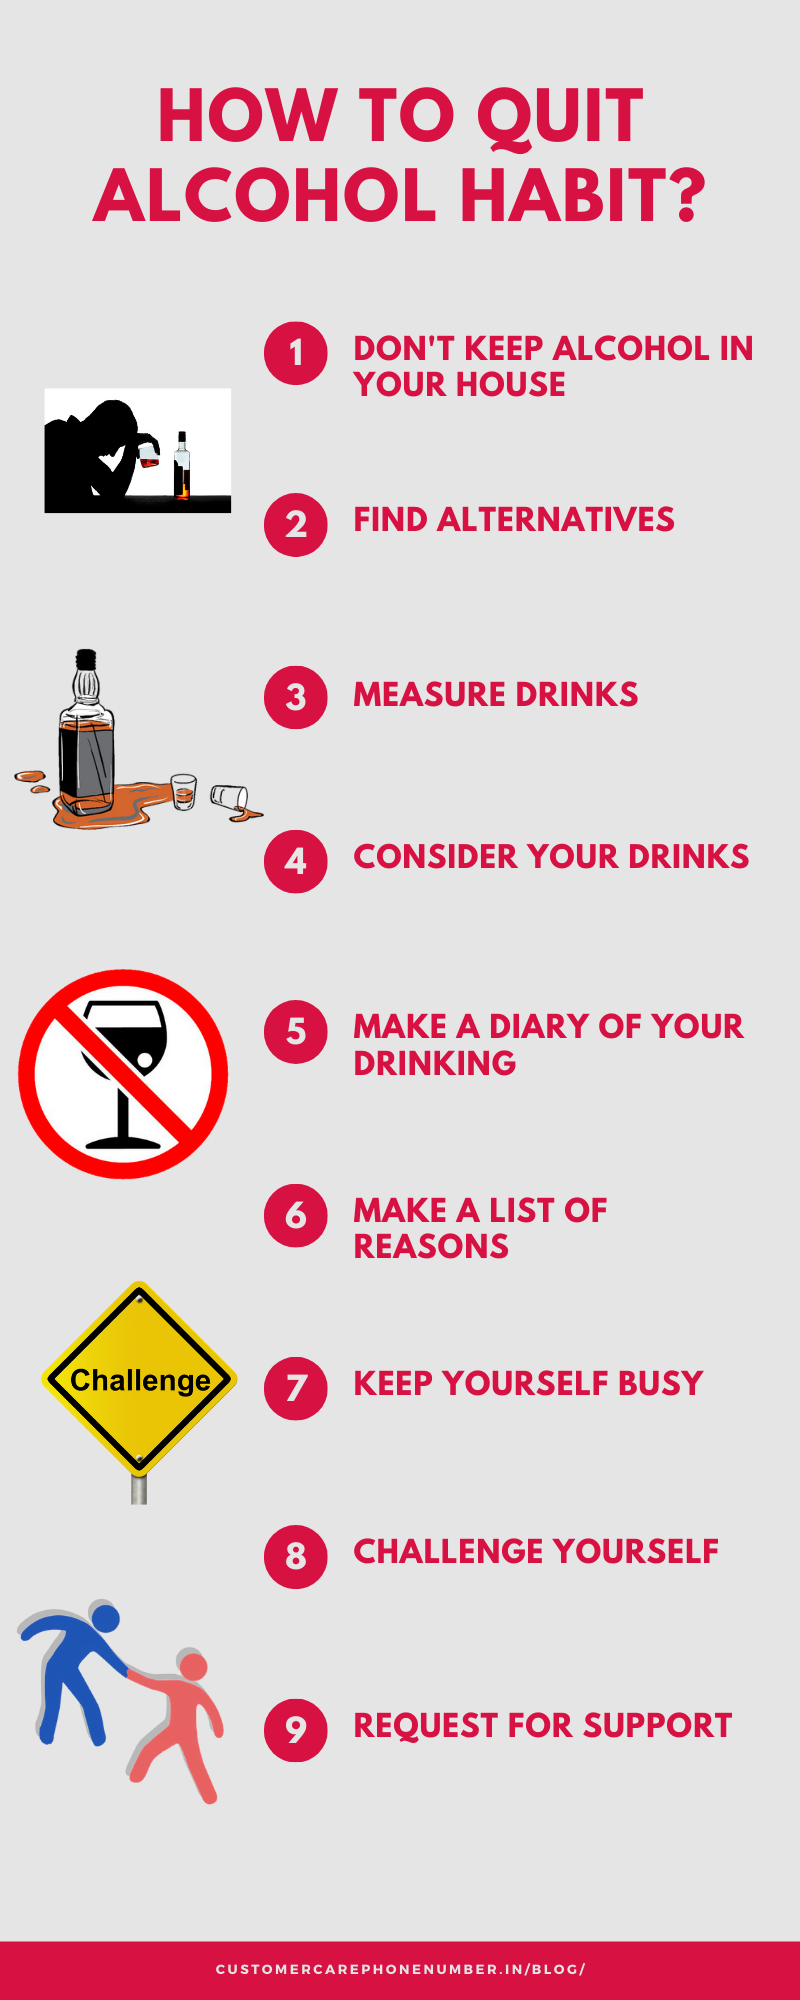 How to Quit Alcohol Habit, ways to cut alcohol, how to get rid of alcohol bad habit